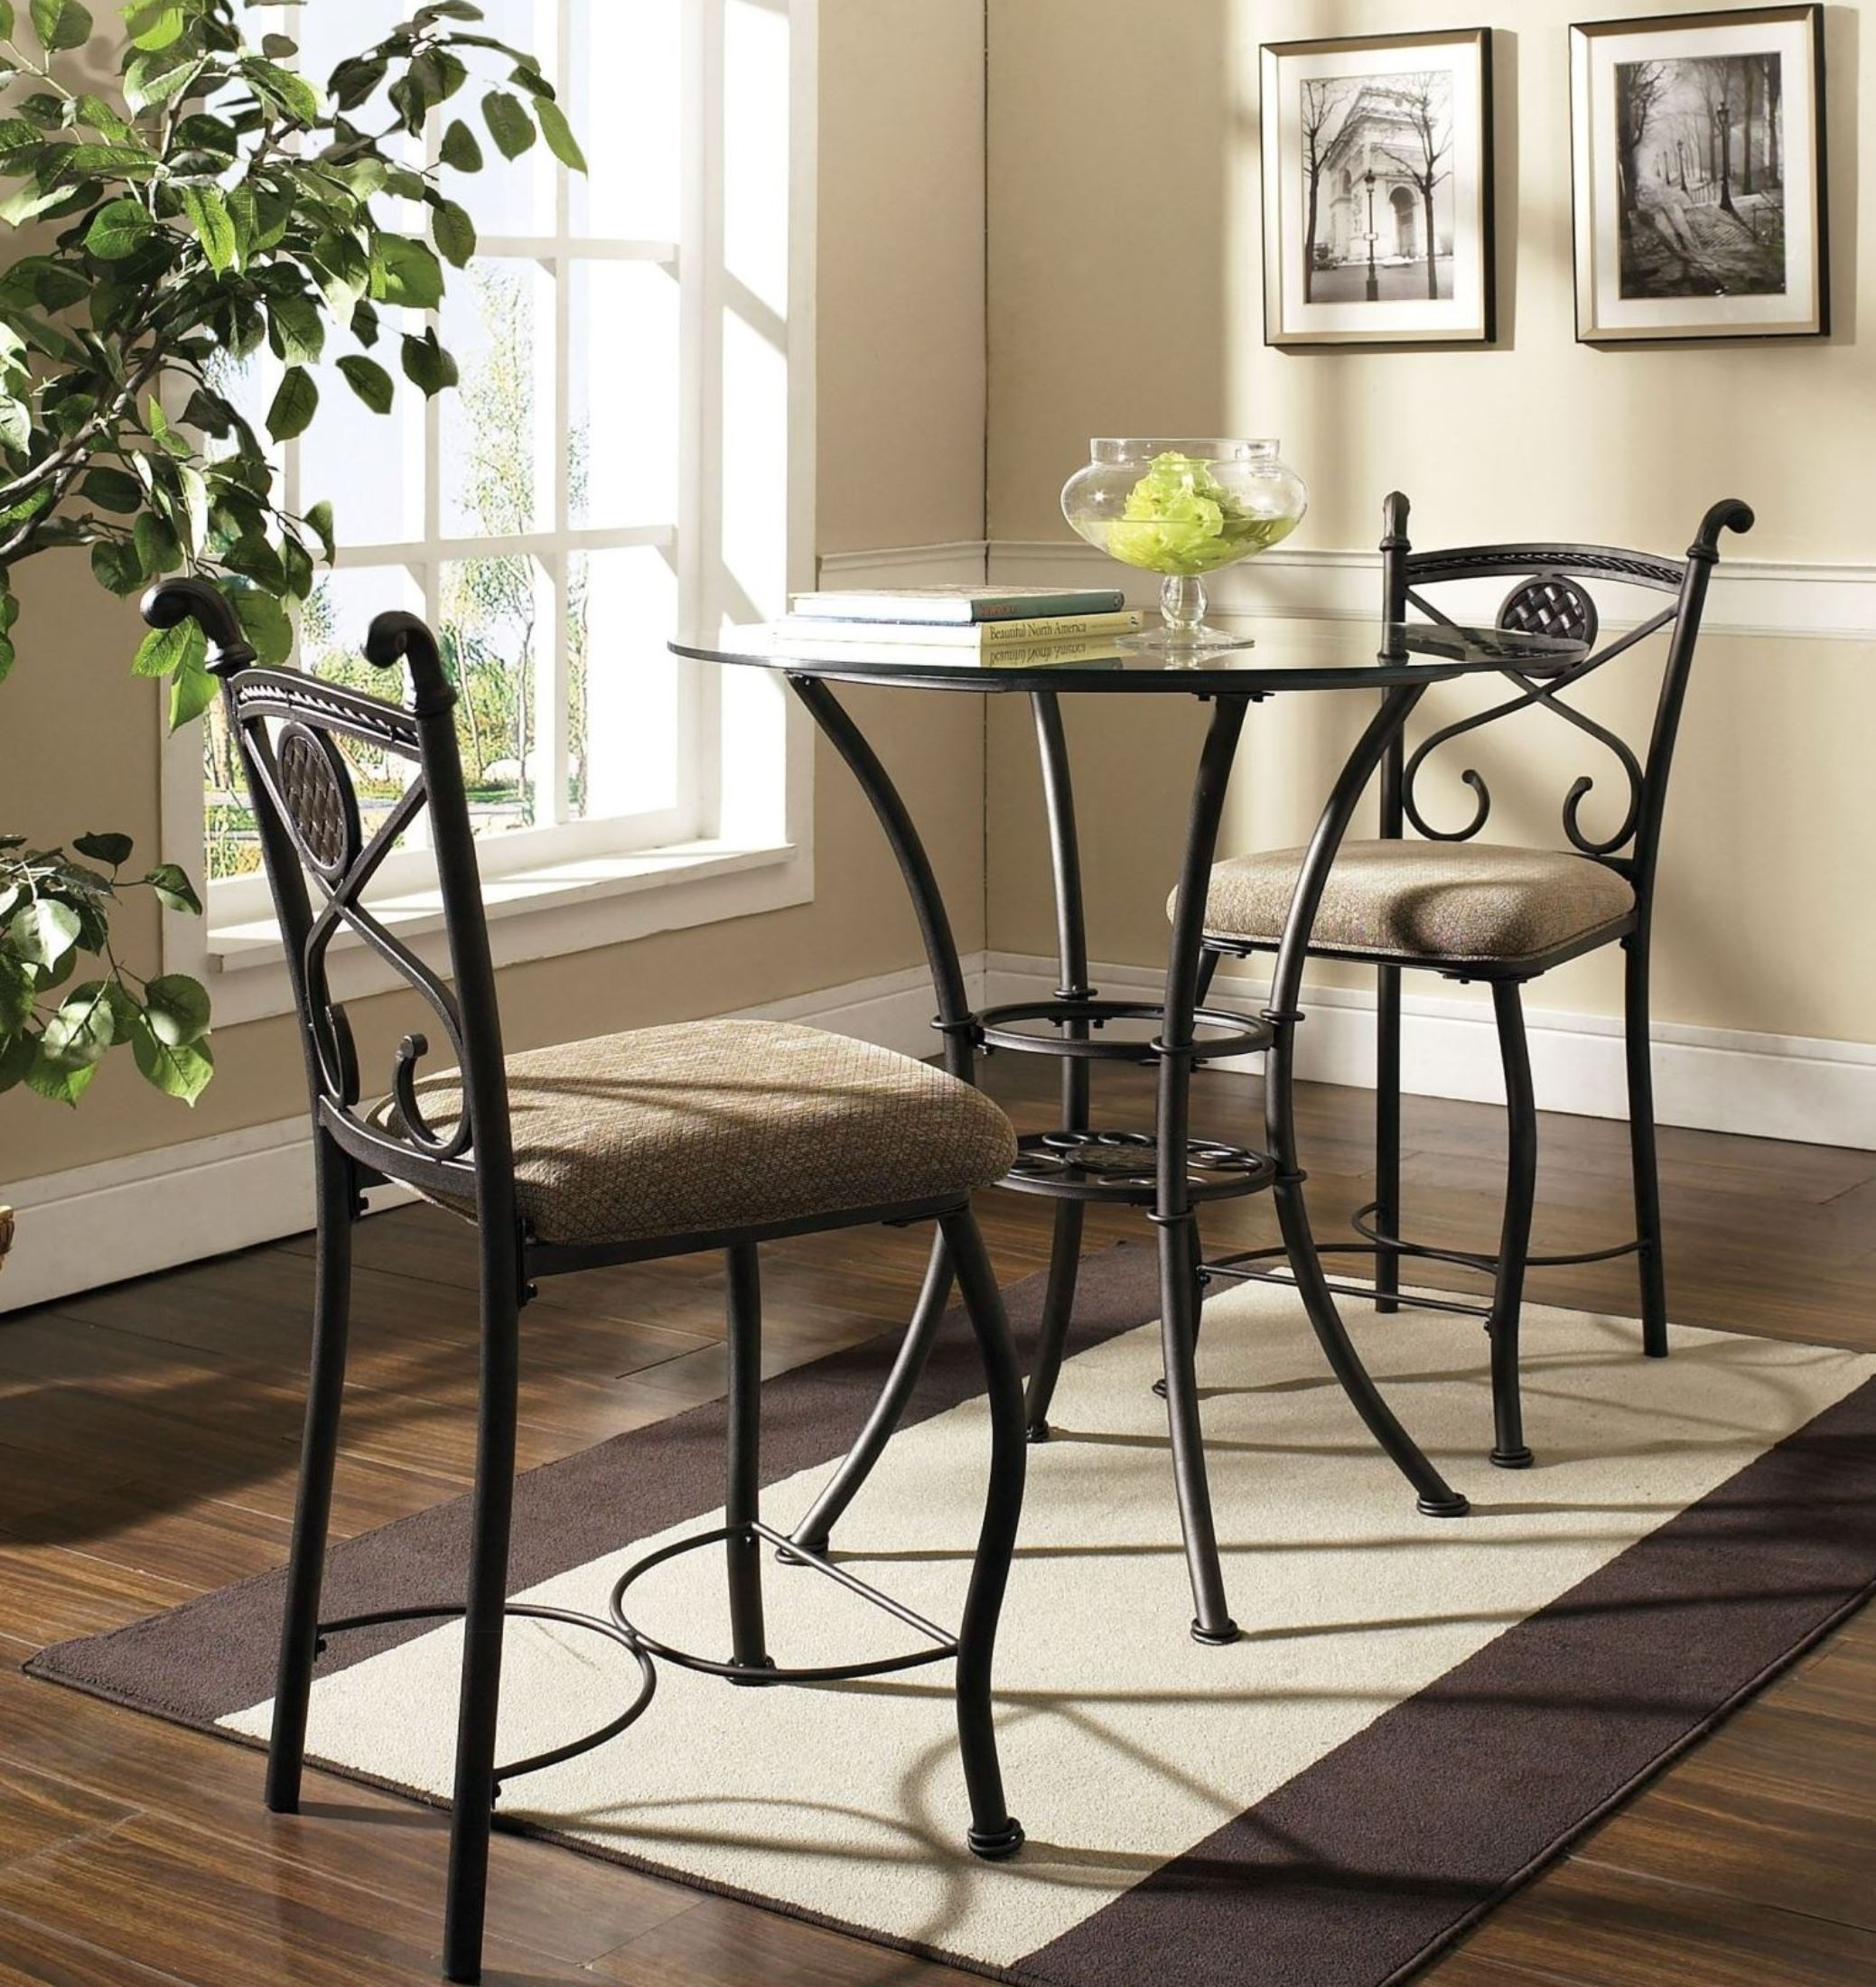 Counter Dining Room Sets: Brookfield Glass Round Counter Height Dining Room Set From